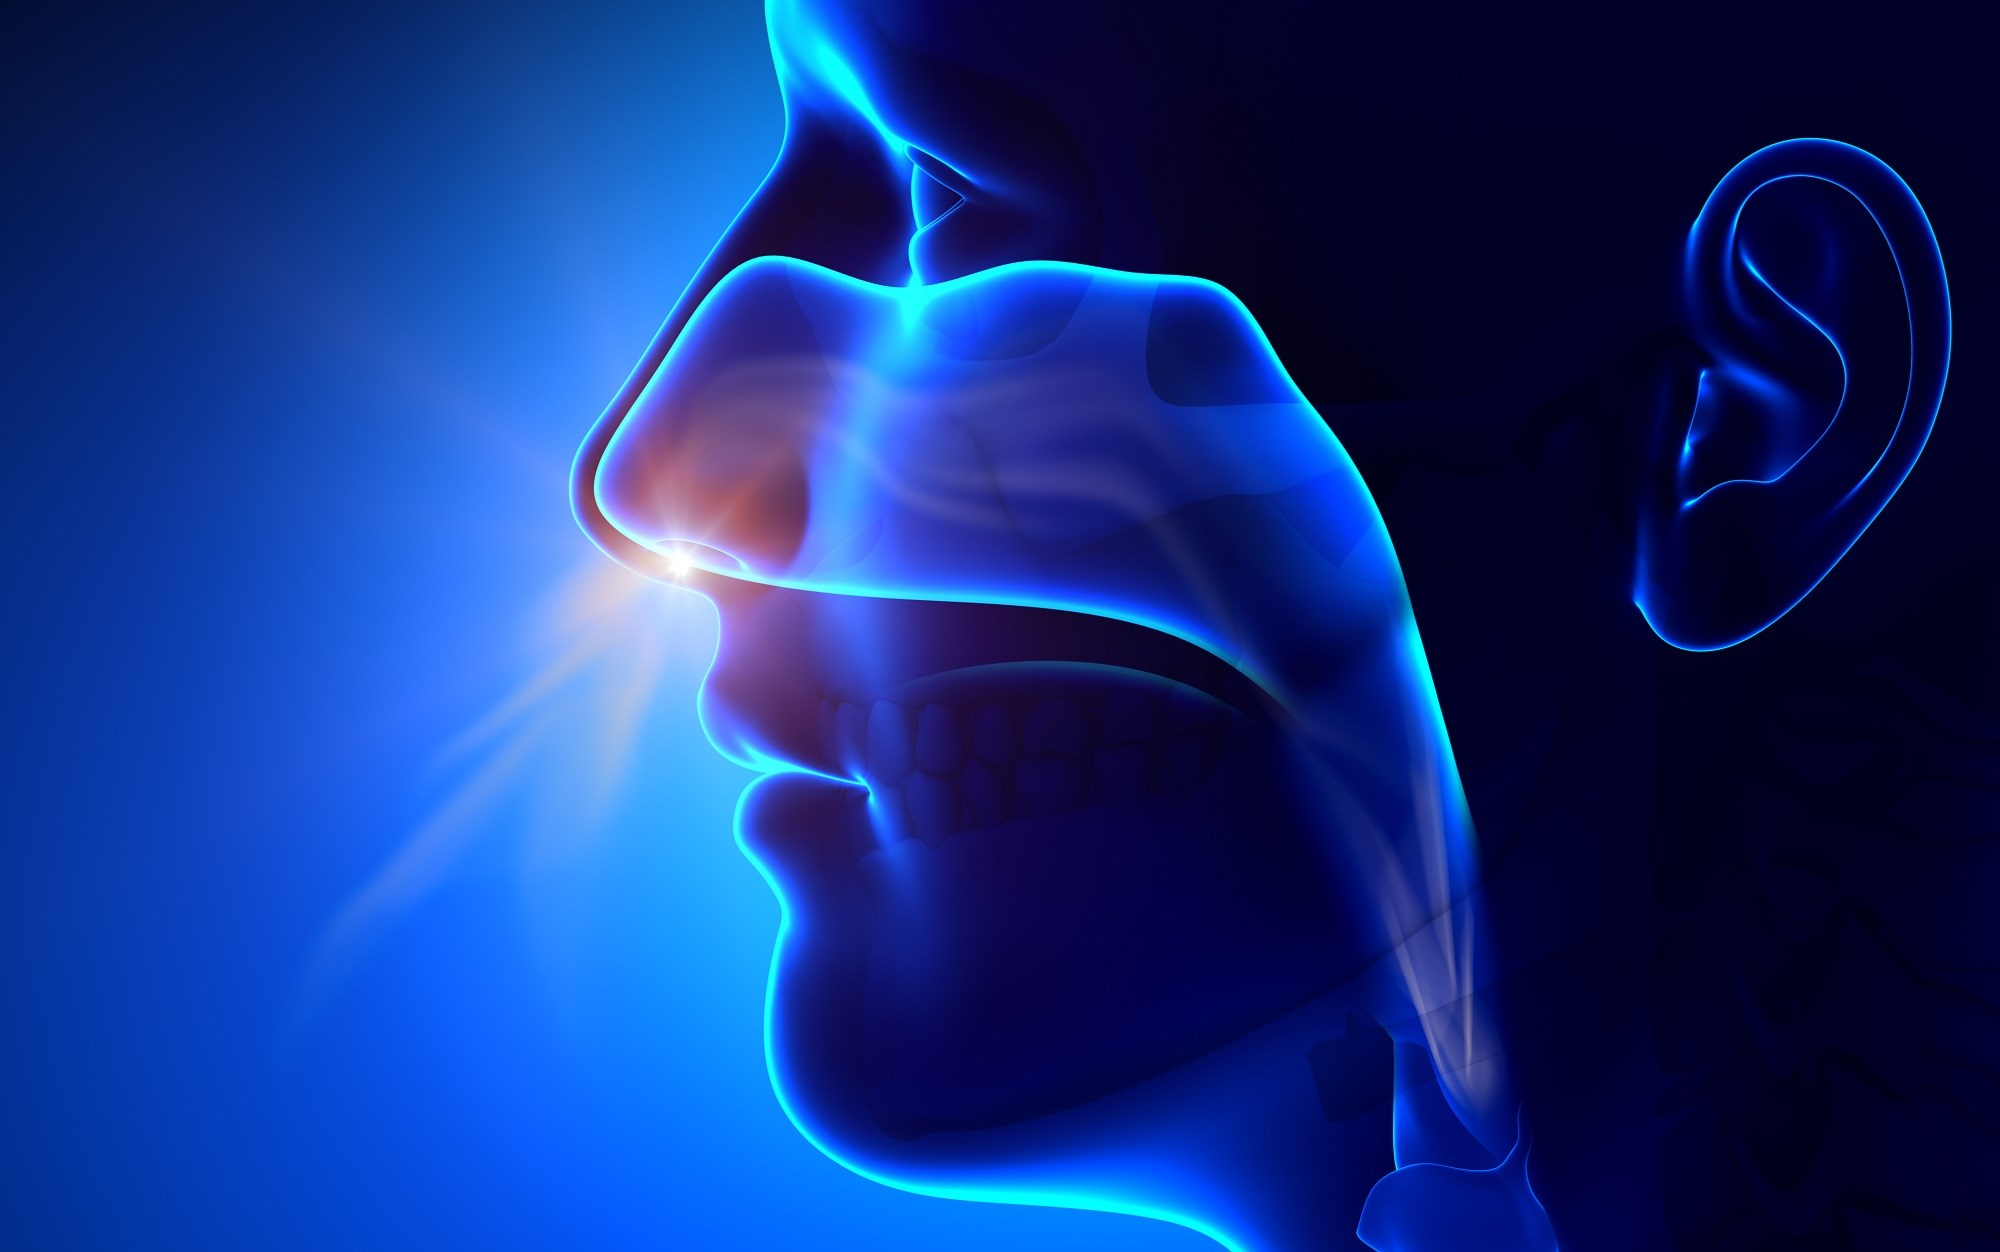 Dupilumab Studies Show Benefit in Chronic Rhinosinusitis With Nasal Polyps